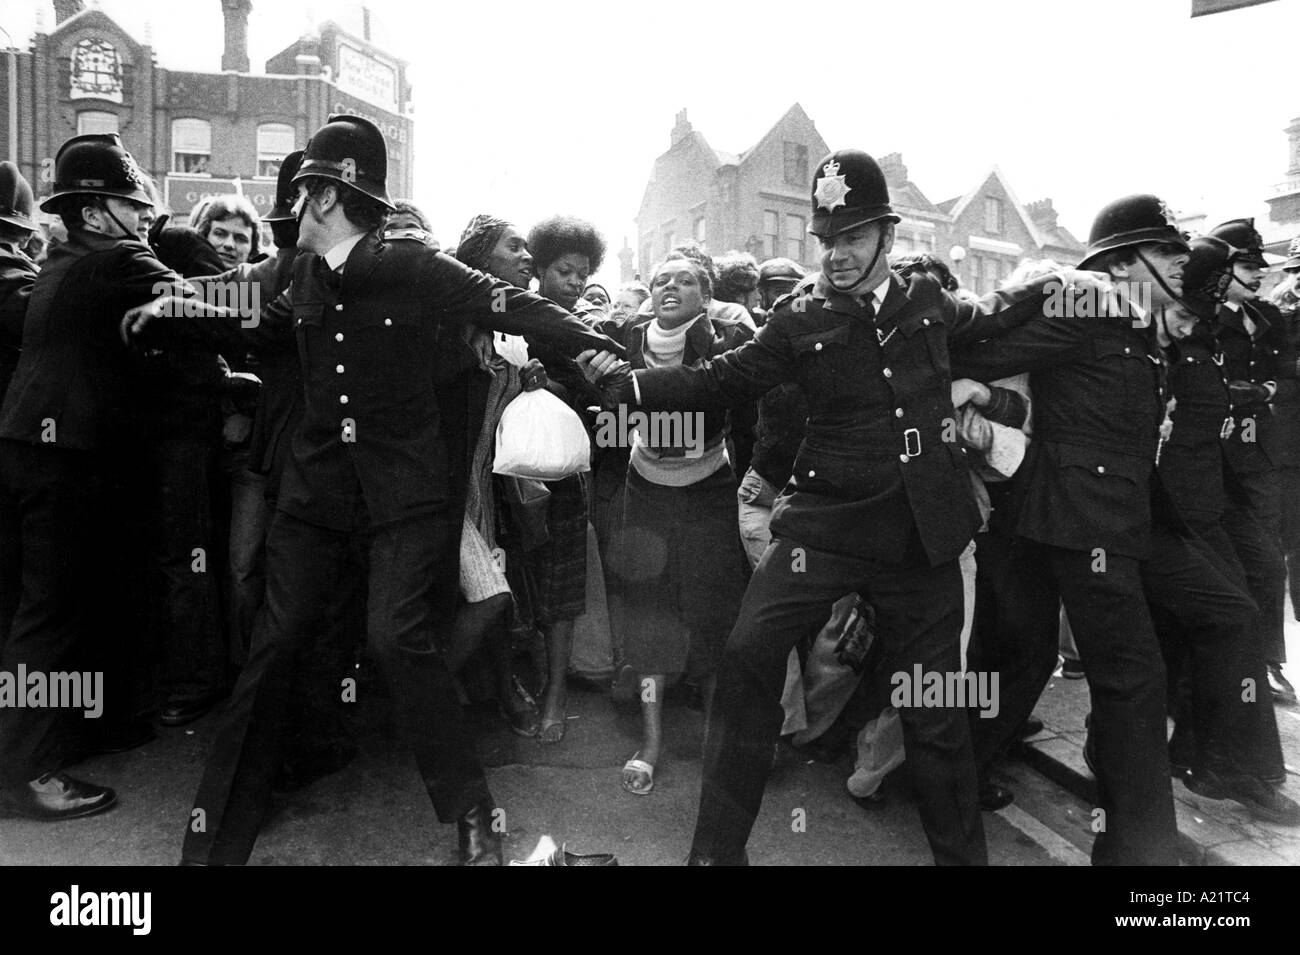 Police clashing with anti-racists protesting at the National Front marching through Lewisham area, London - Stock Image